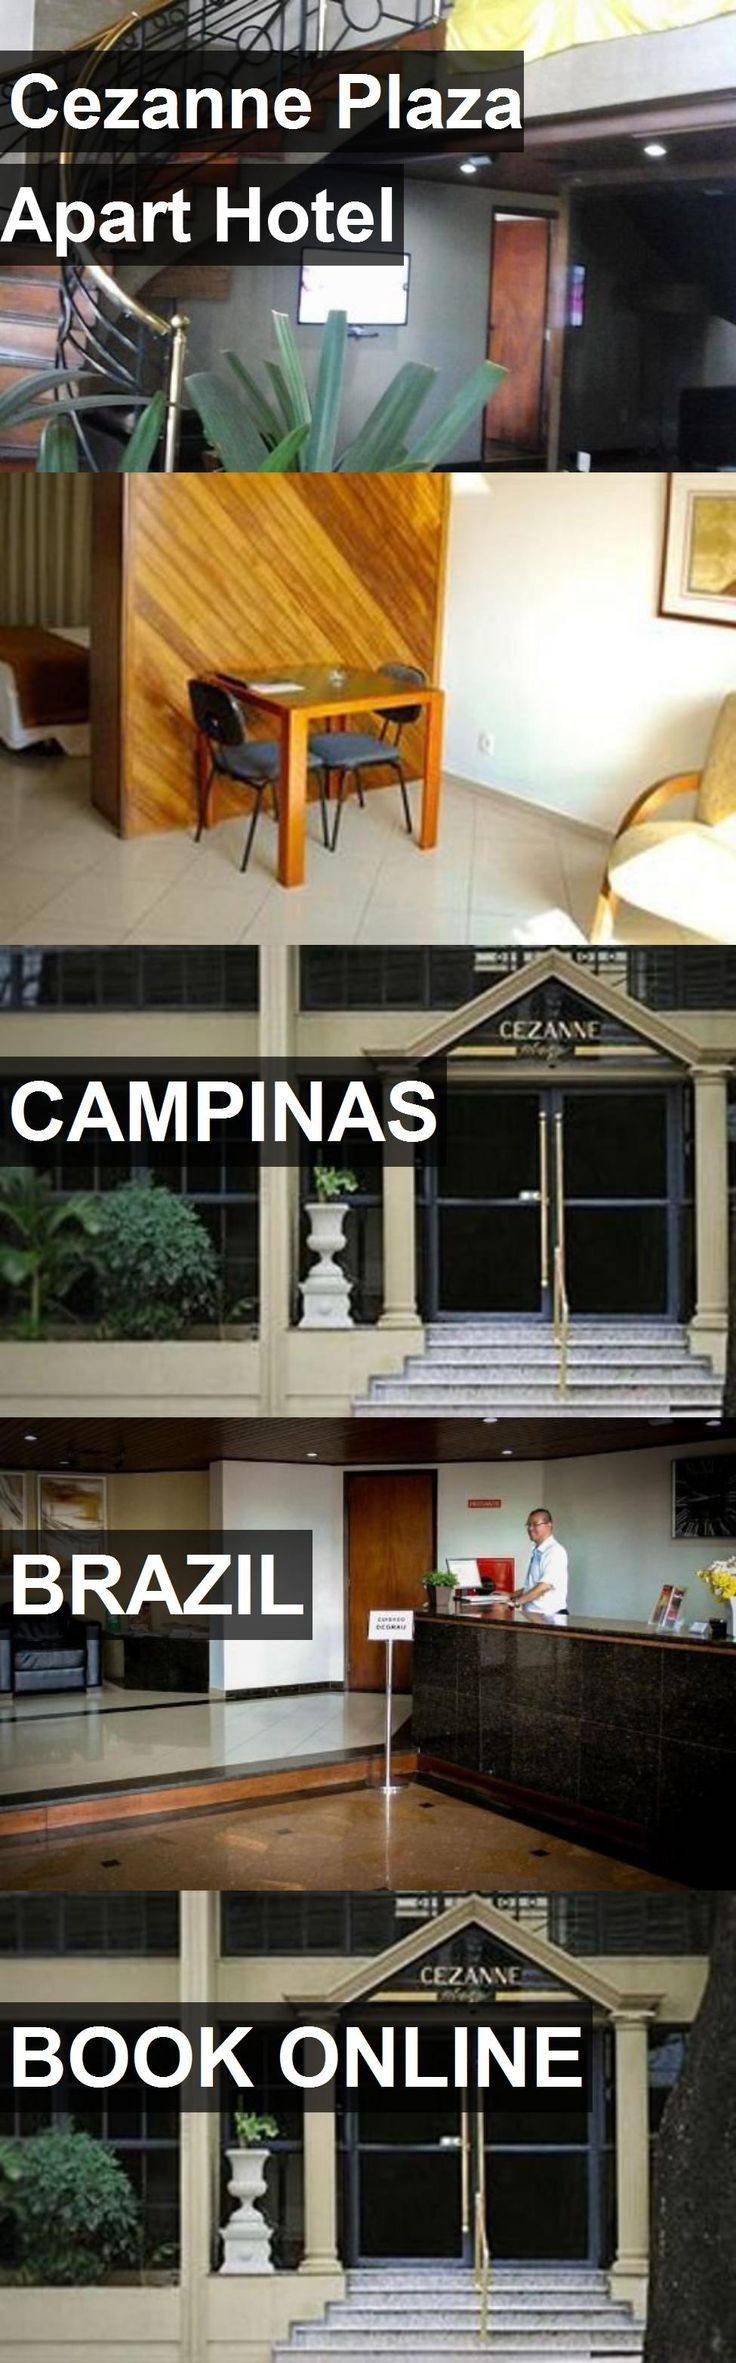 Cezanne Plaza Apart Hotel in Campinas, Brazil. For more information, photos, reviews and best prices please follow the link. #Brazil #Campinas #travel #vacation #hotel